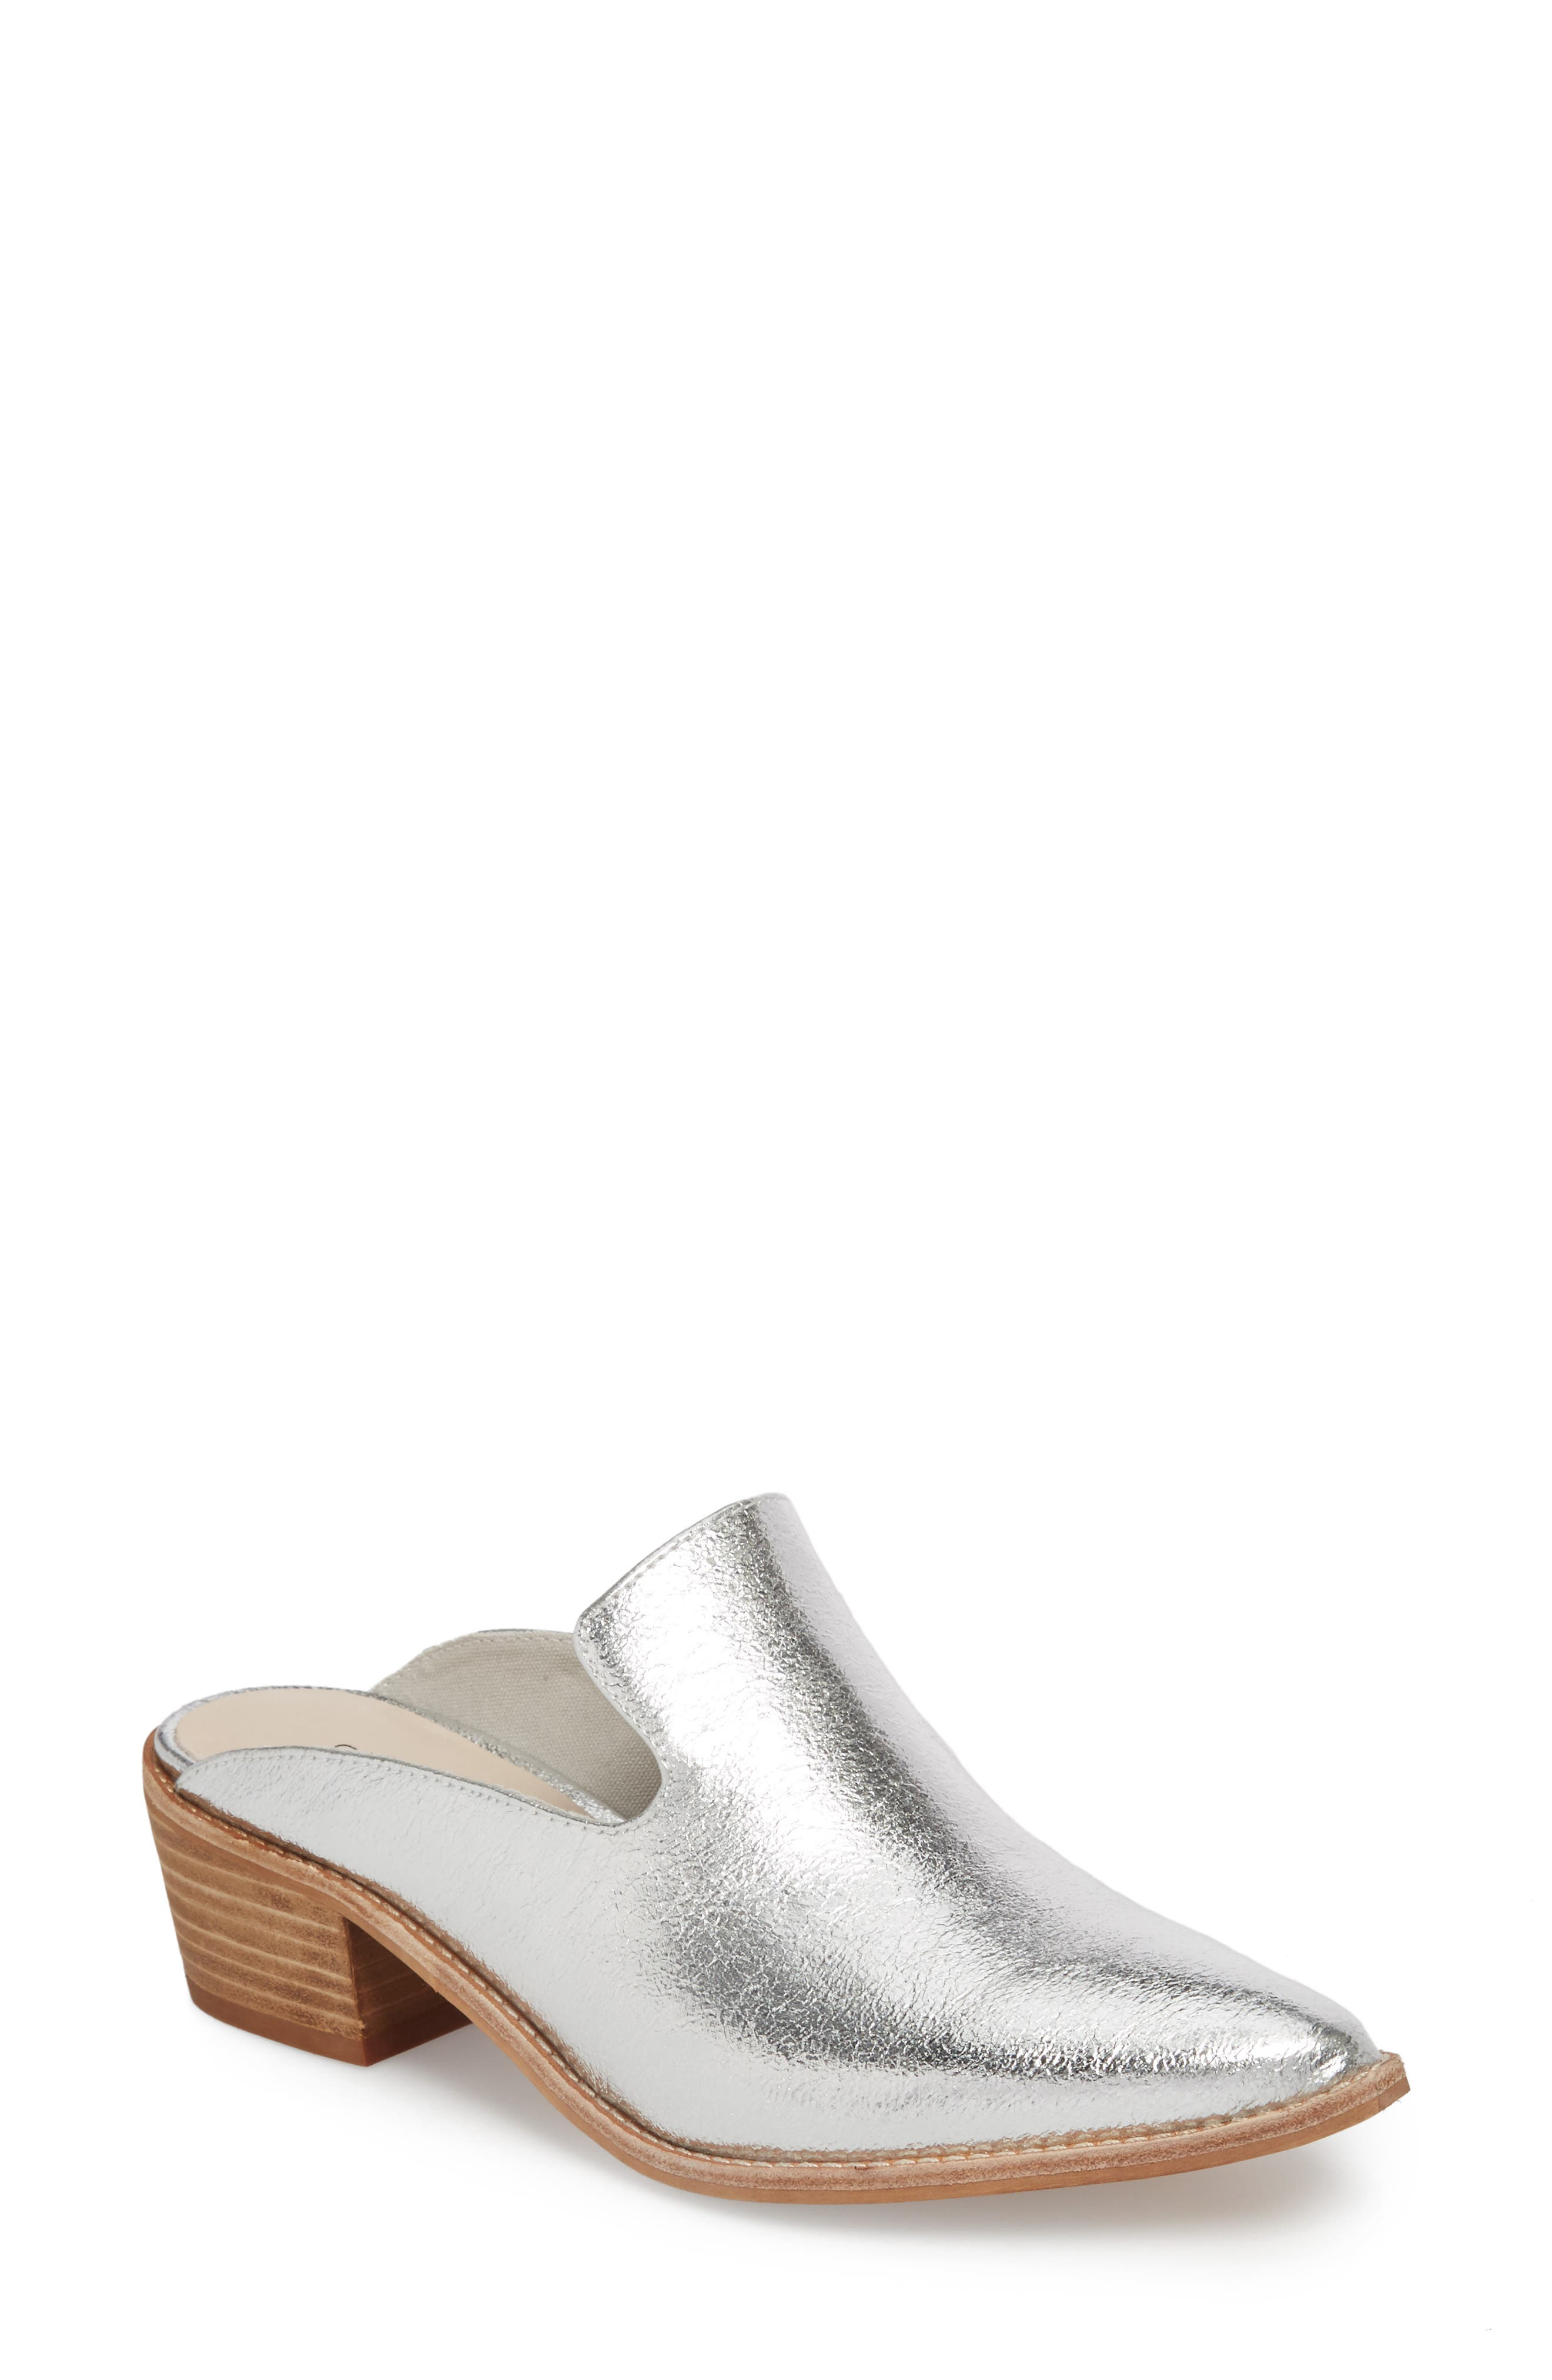 Main Image - Chinese Laundry Marnie Loafer Mule (Women)